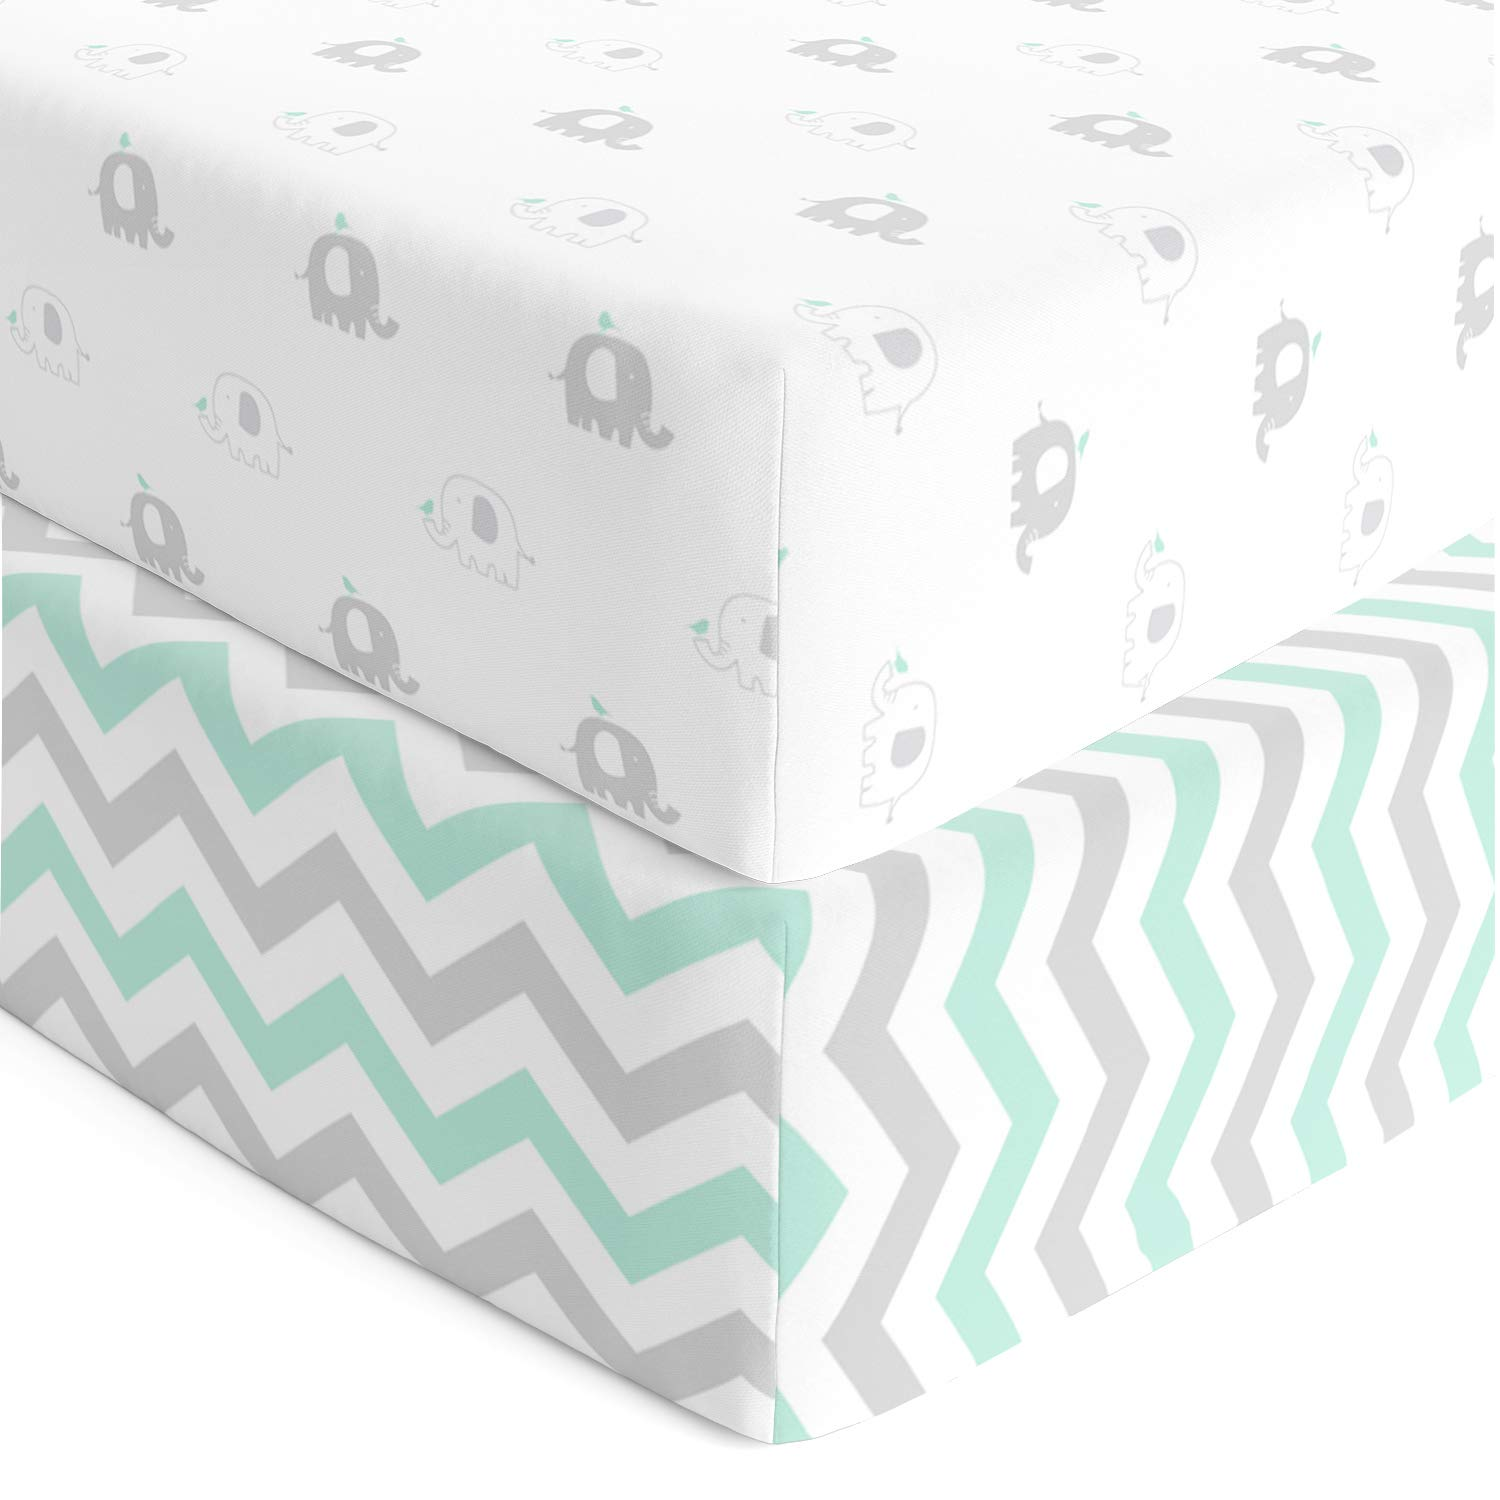 Cuddly Cubs Softest Fitted Crib Sheets Set | 2 Pack Toddler Bed Sheet for Boy or Girl | Stretchy Jersey Cotton Bedding for Standard Mattress | Grey & Teal Chevron, Safari Elephants by Cuddly Cubs